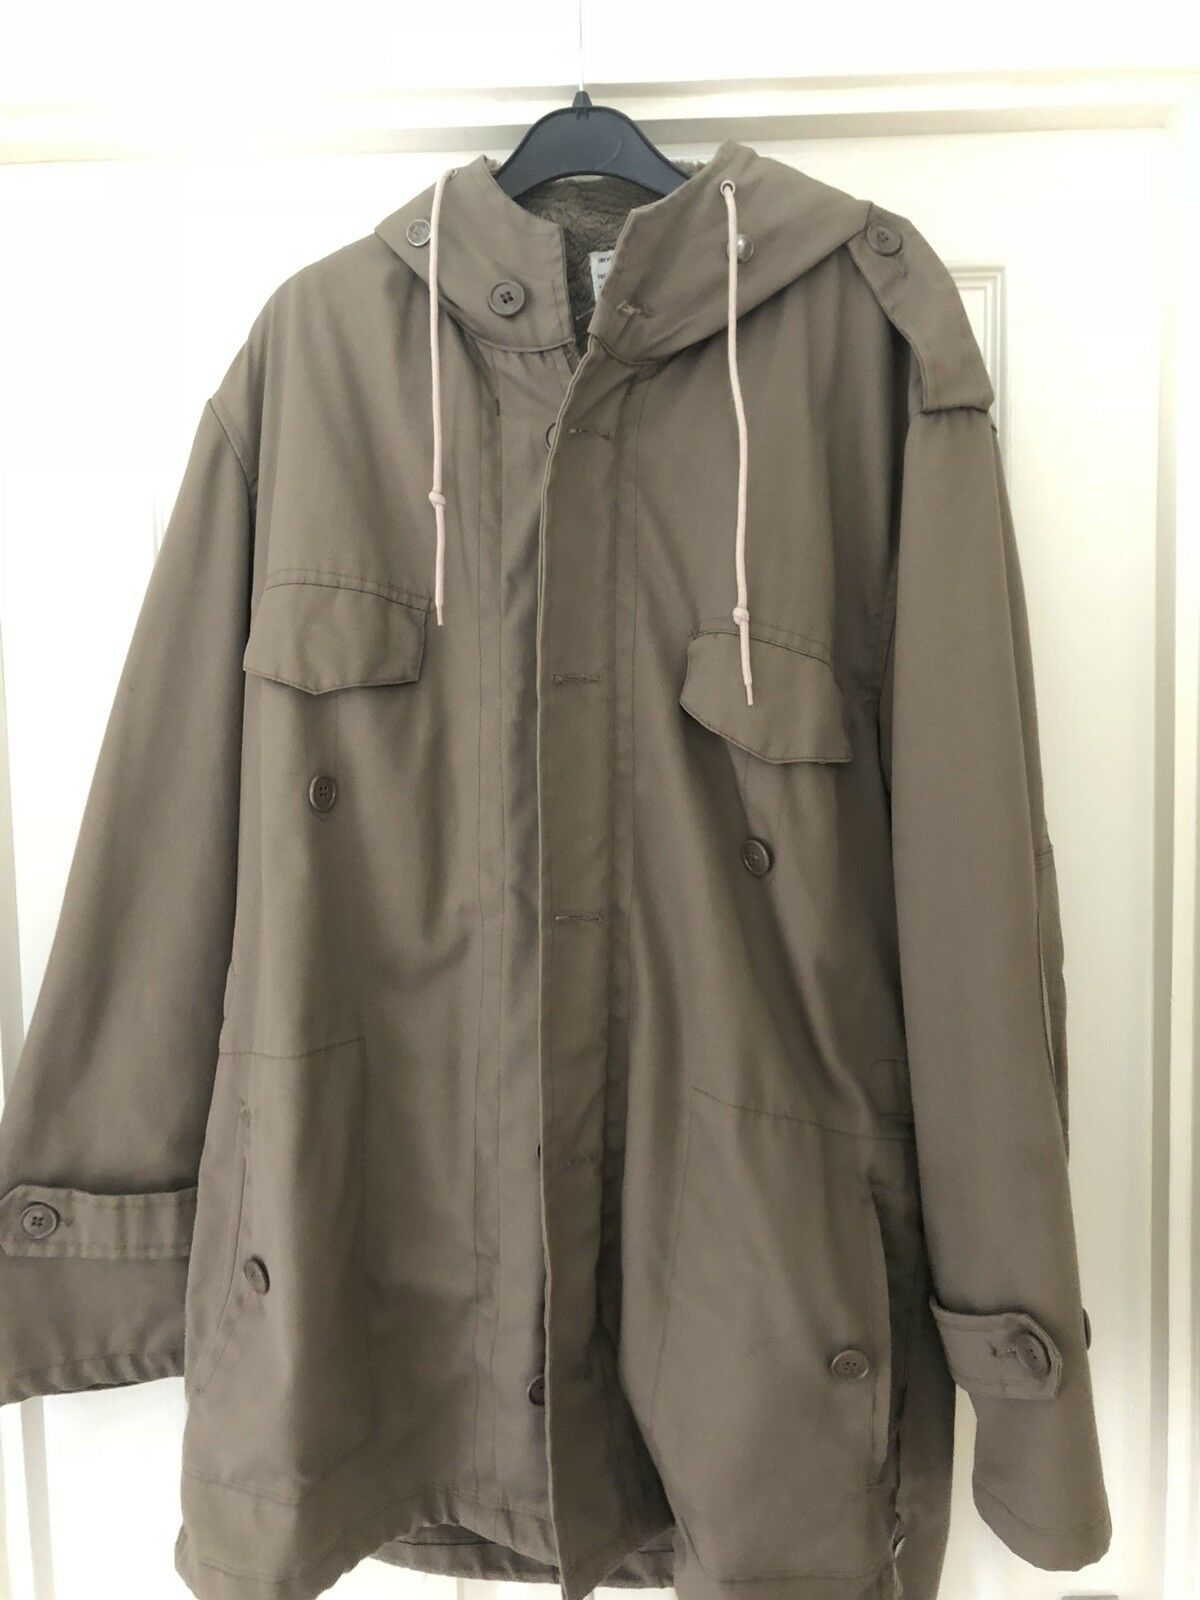 Army Style Parka, Beige. Size 50 (M)